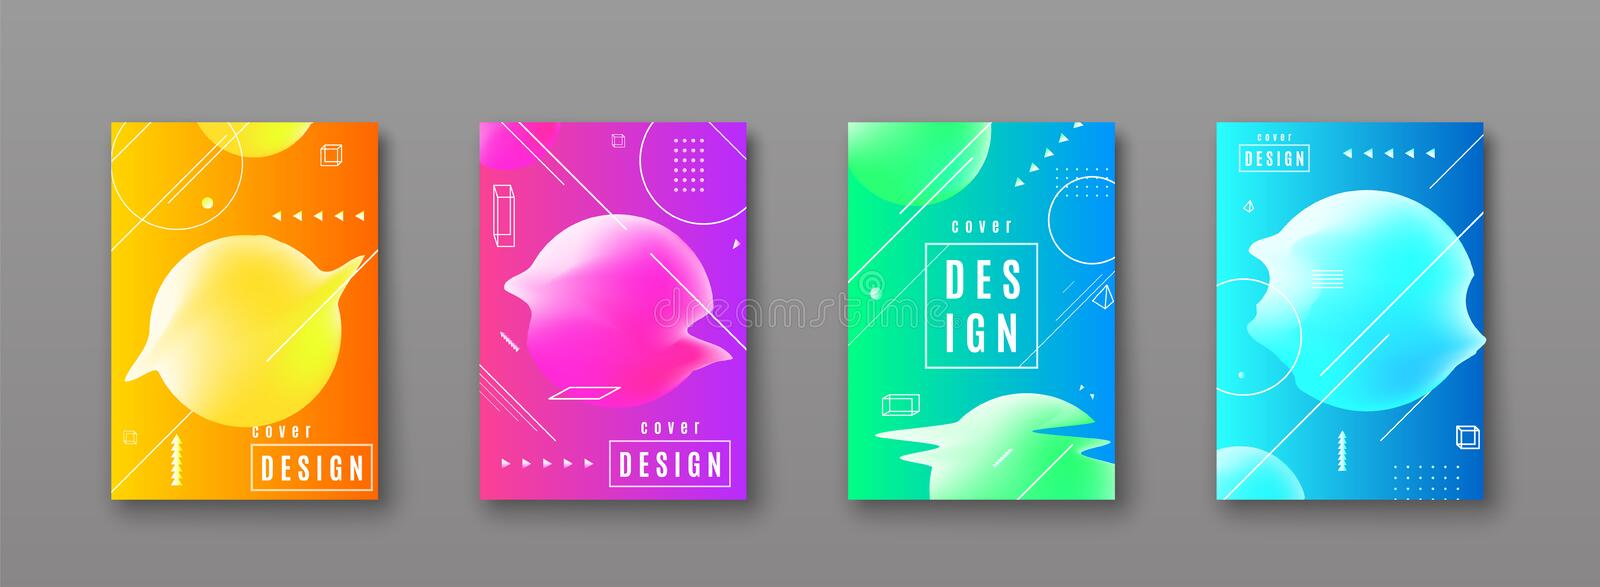 Bright color abstract pattern background with line gradient texture. Geometric shape, glitch round form for minimal dynamic cover design. Blue, pink, yellow stock illustration